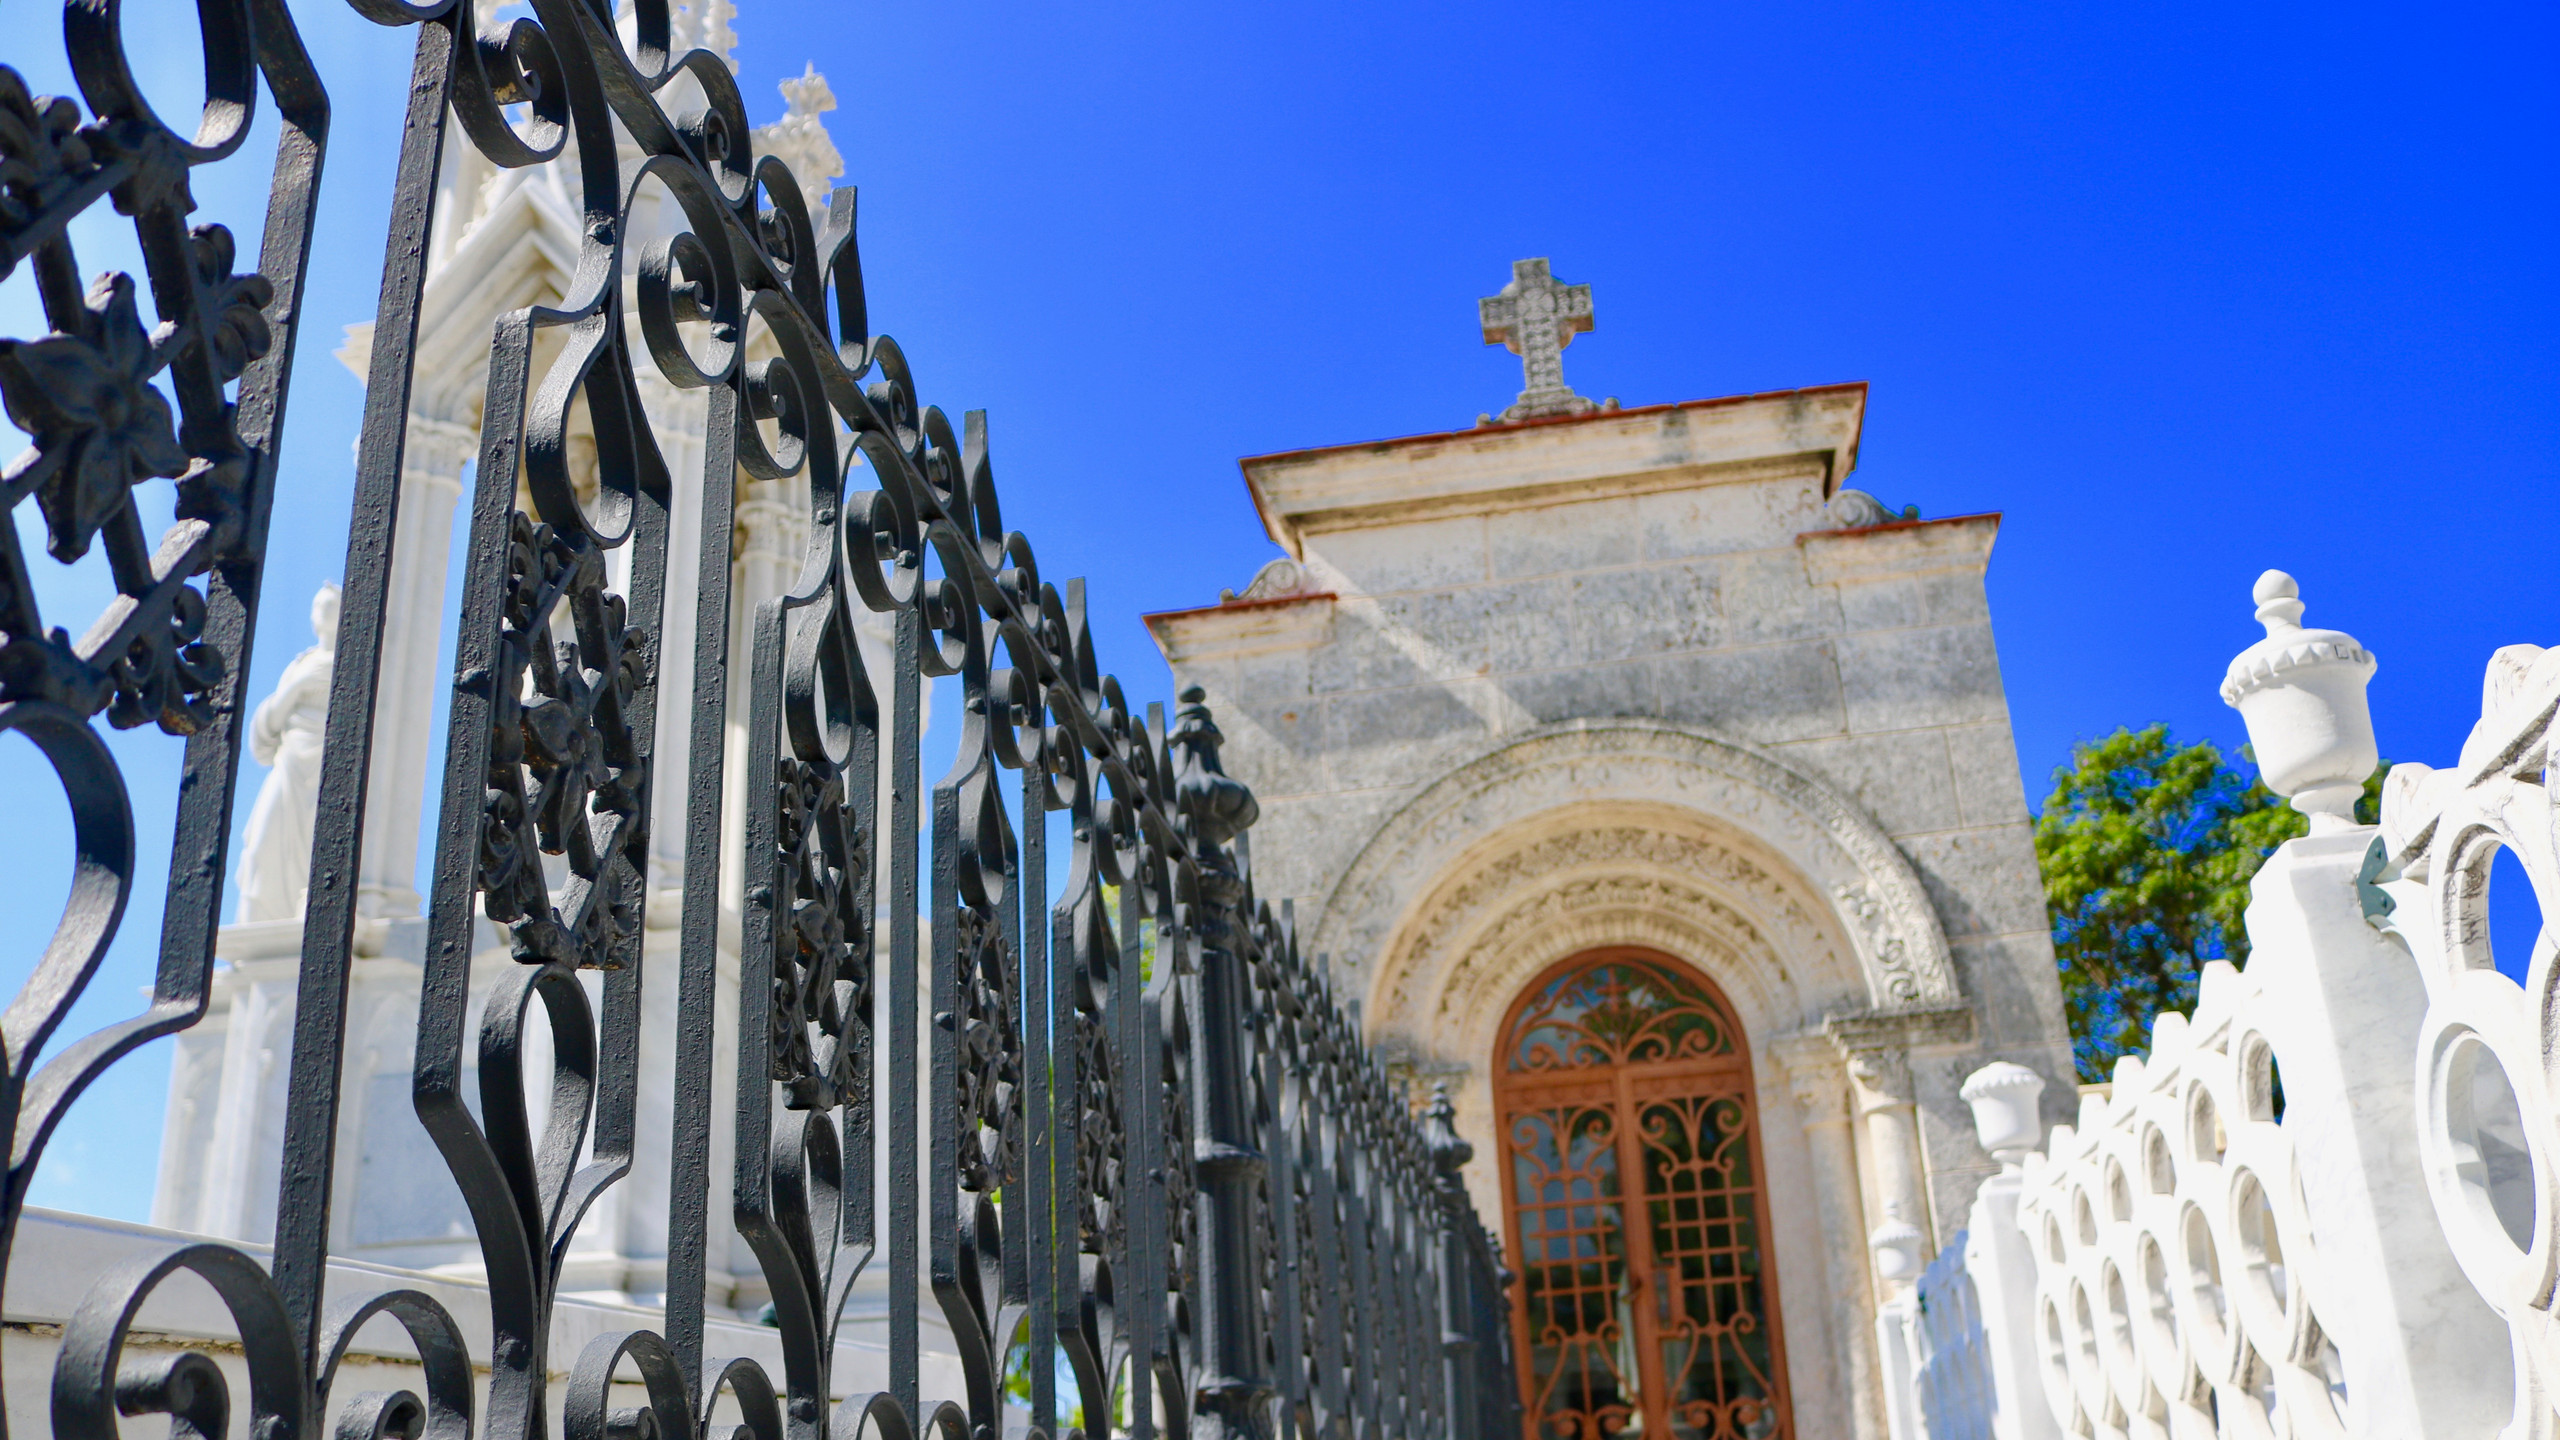 Close-up of iron gate leading to a mausoleum in Cuba's Colon Cemetery.